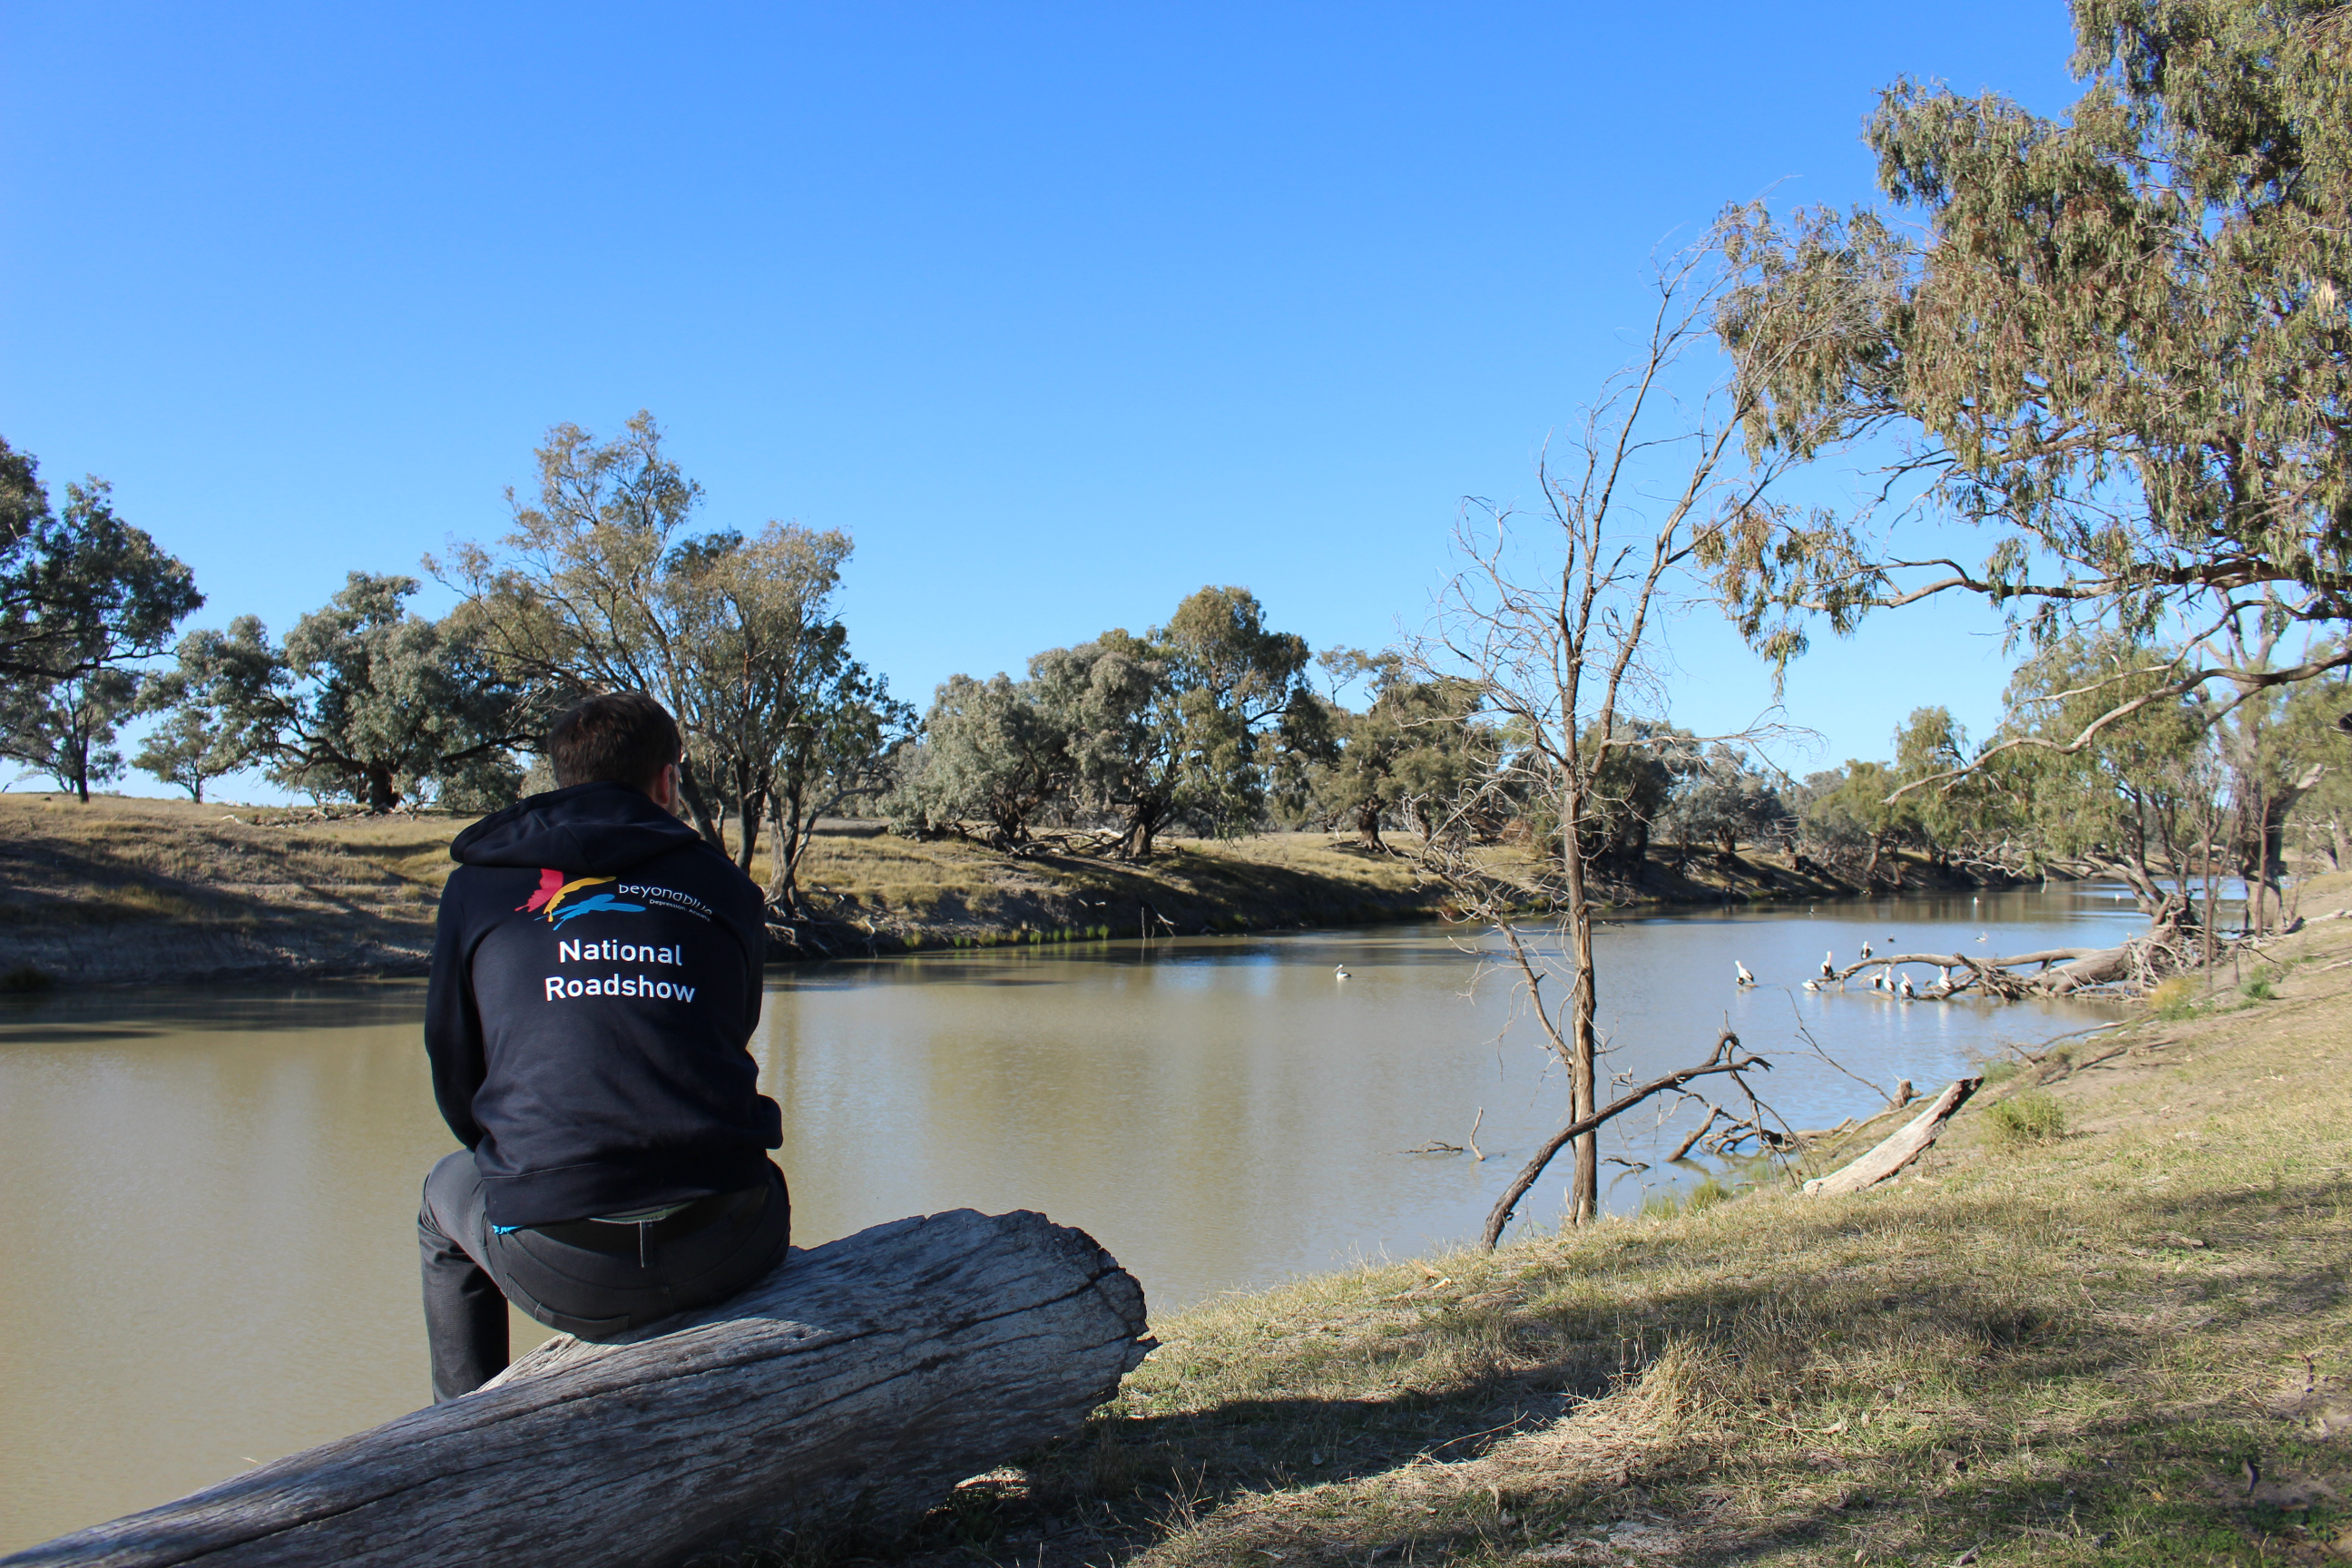 Taking time out to enjoy the beauty of the Darling River in Bourke.